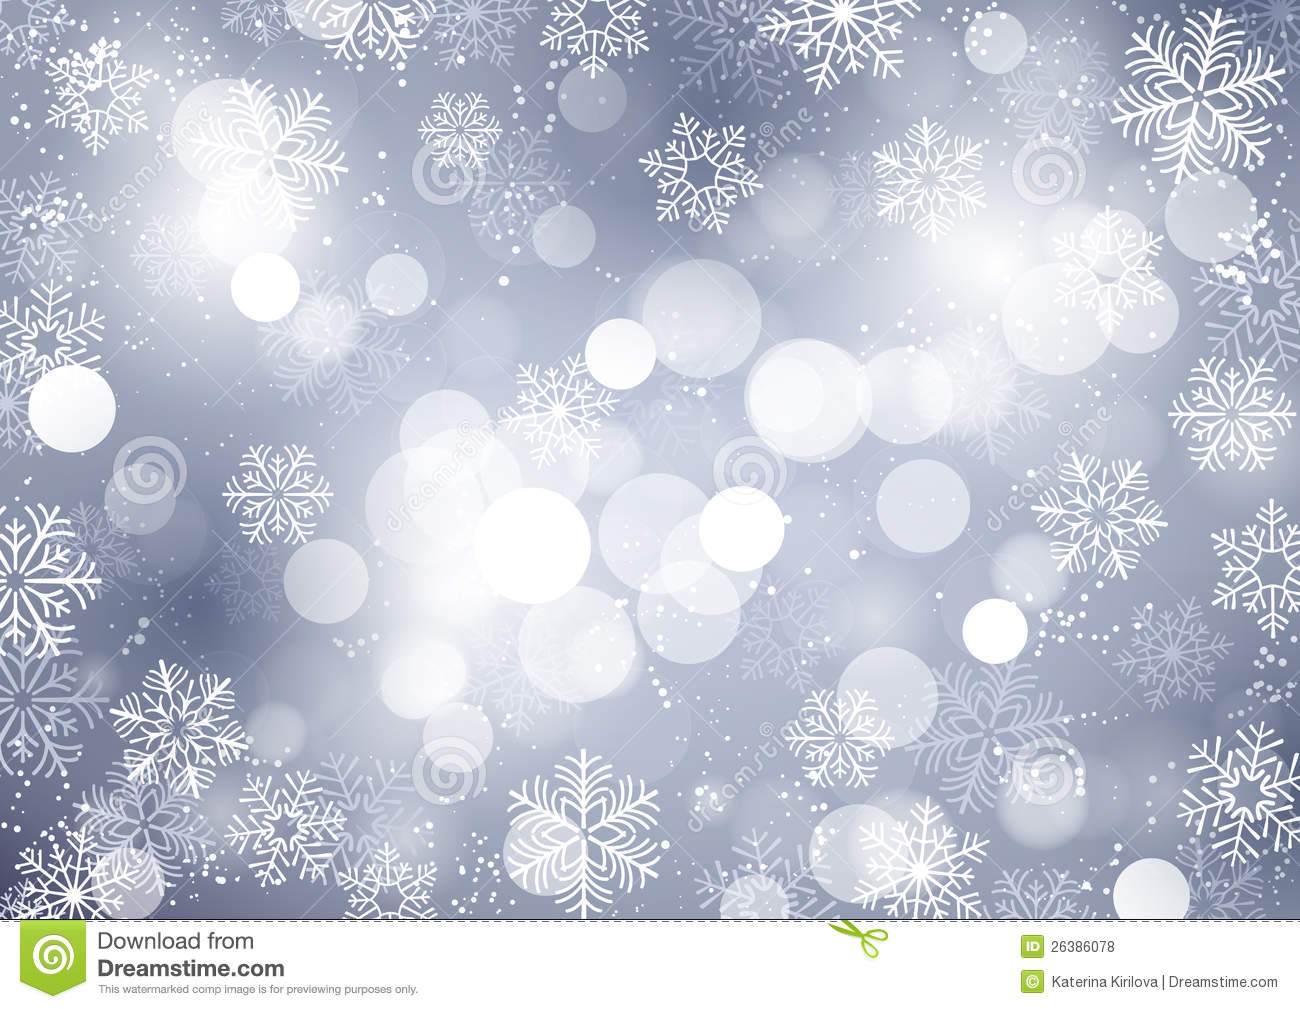 Winter Background Royalty Free Stock Photos - Image: 26386078